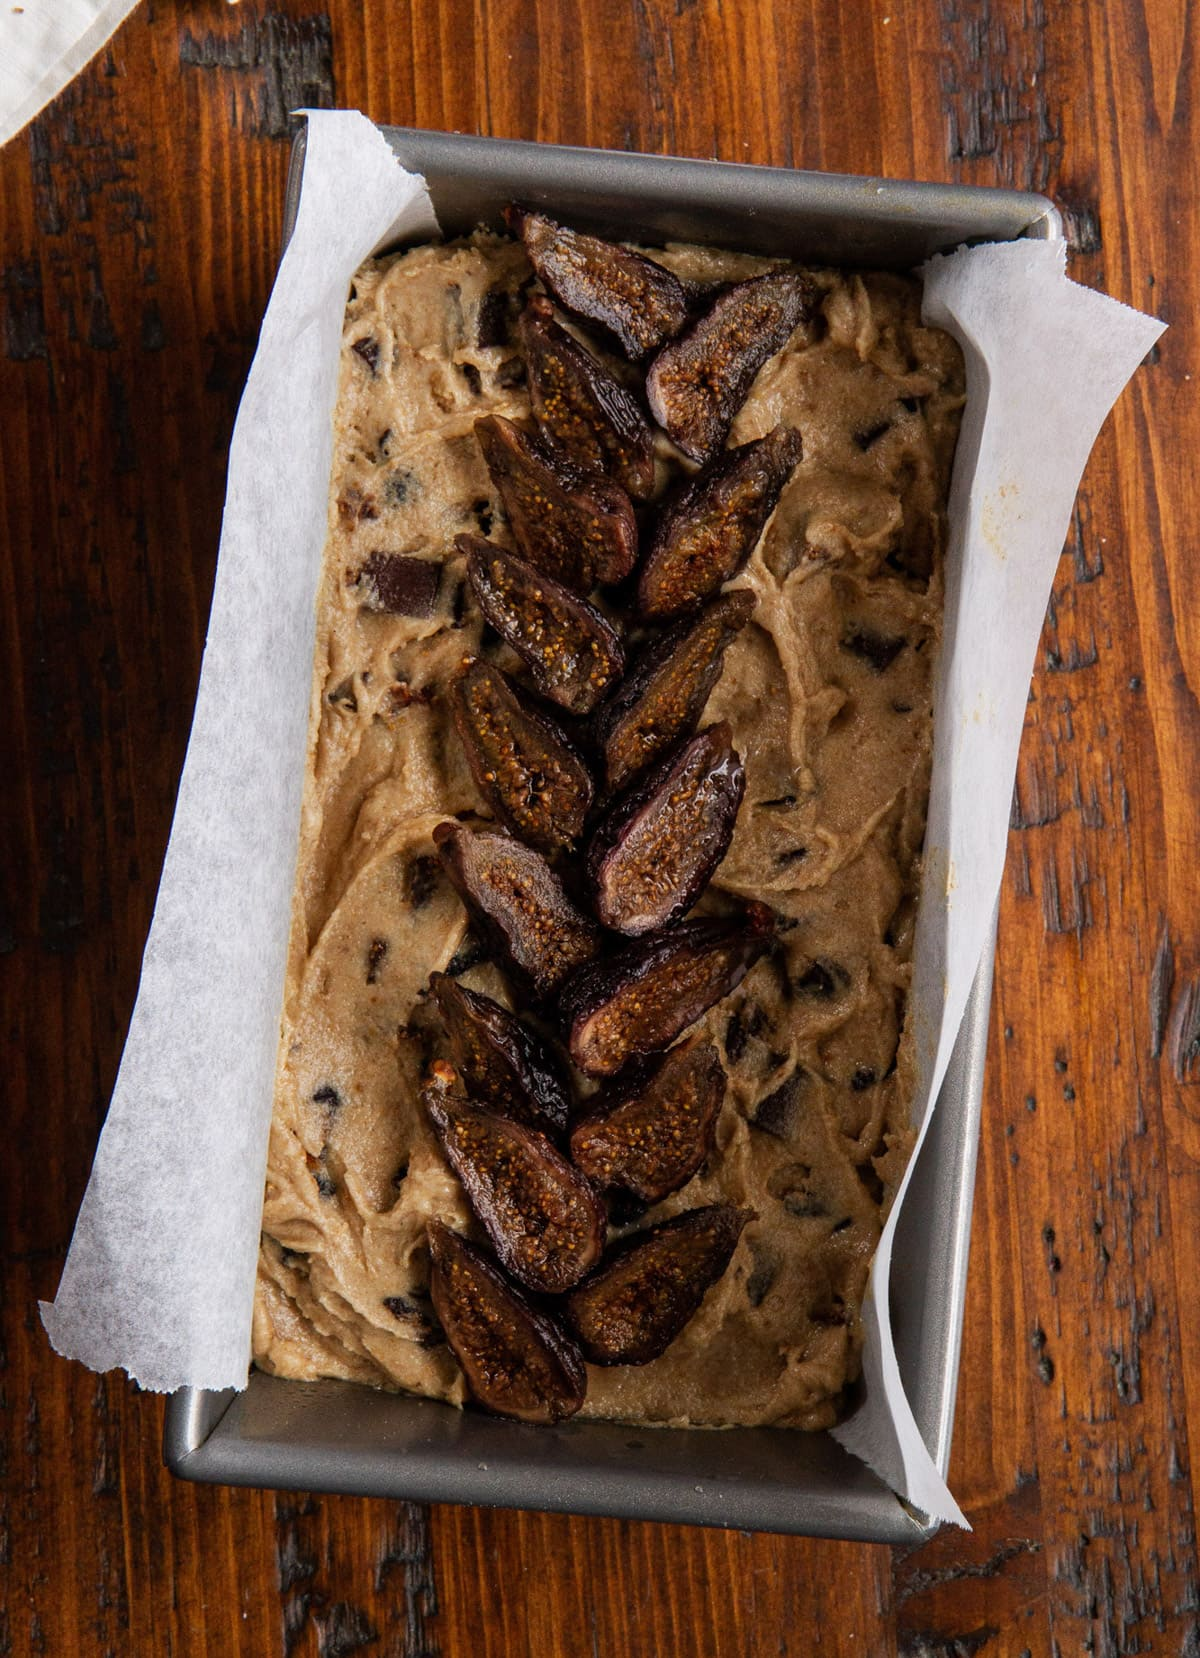 Whole Wheat Chocolate Chunk Fig Bread -- Made with mission dried figs, dark chocolate and whole wheat flour, this quick bread recipe is a smart food choice for the whole fam. @girlversusdough #girlversusdough